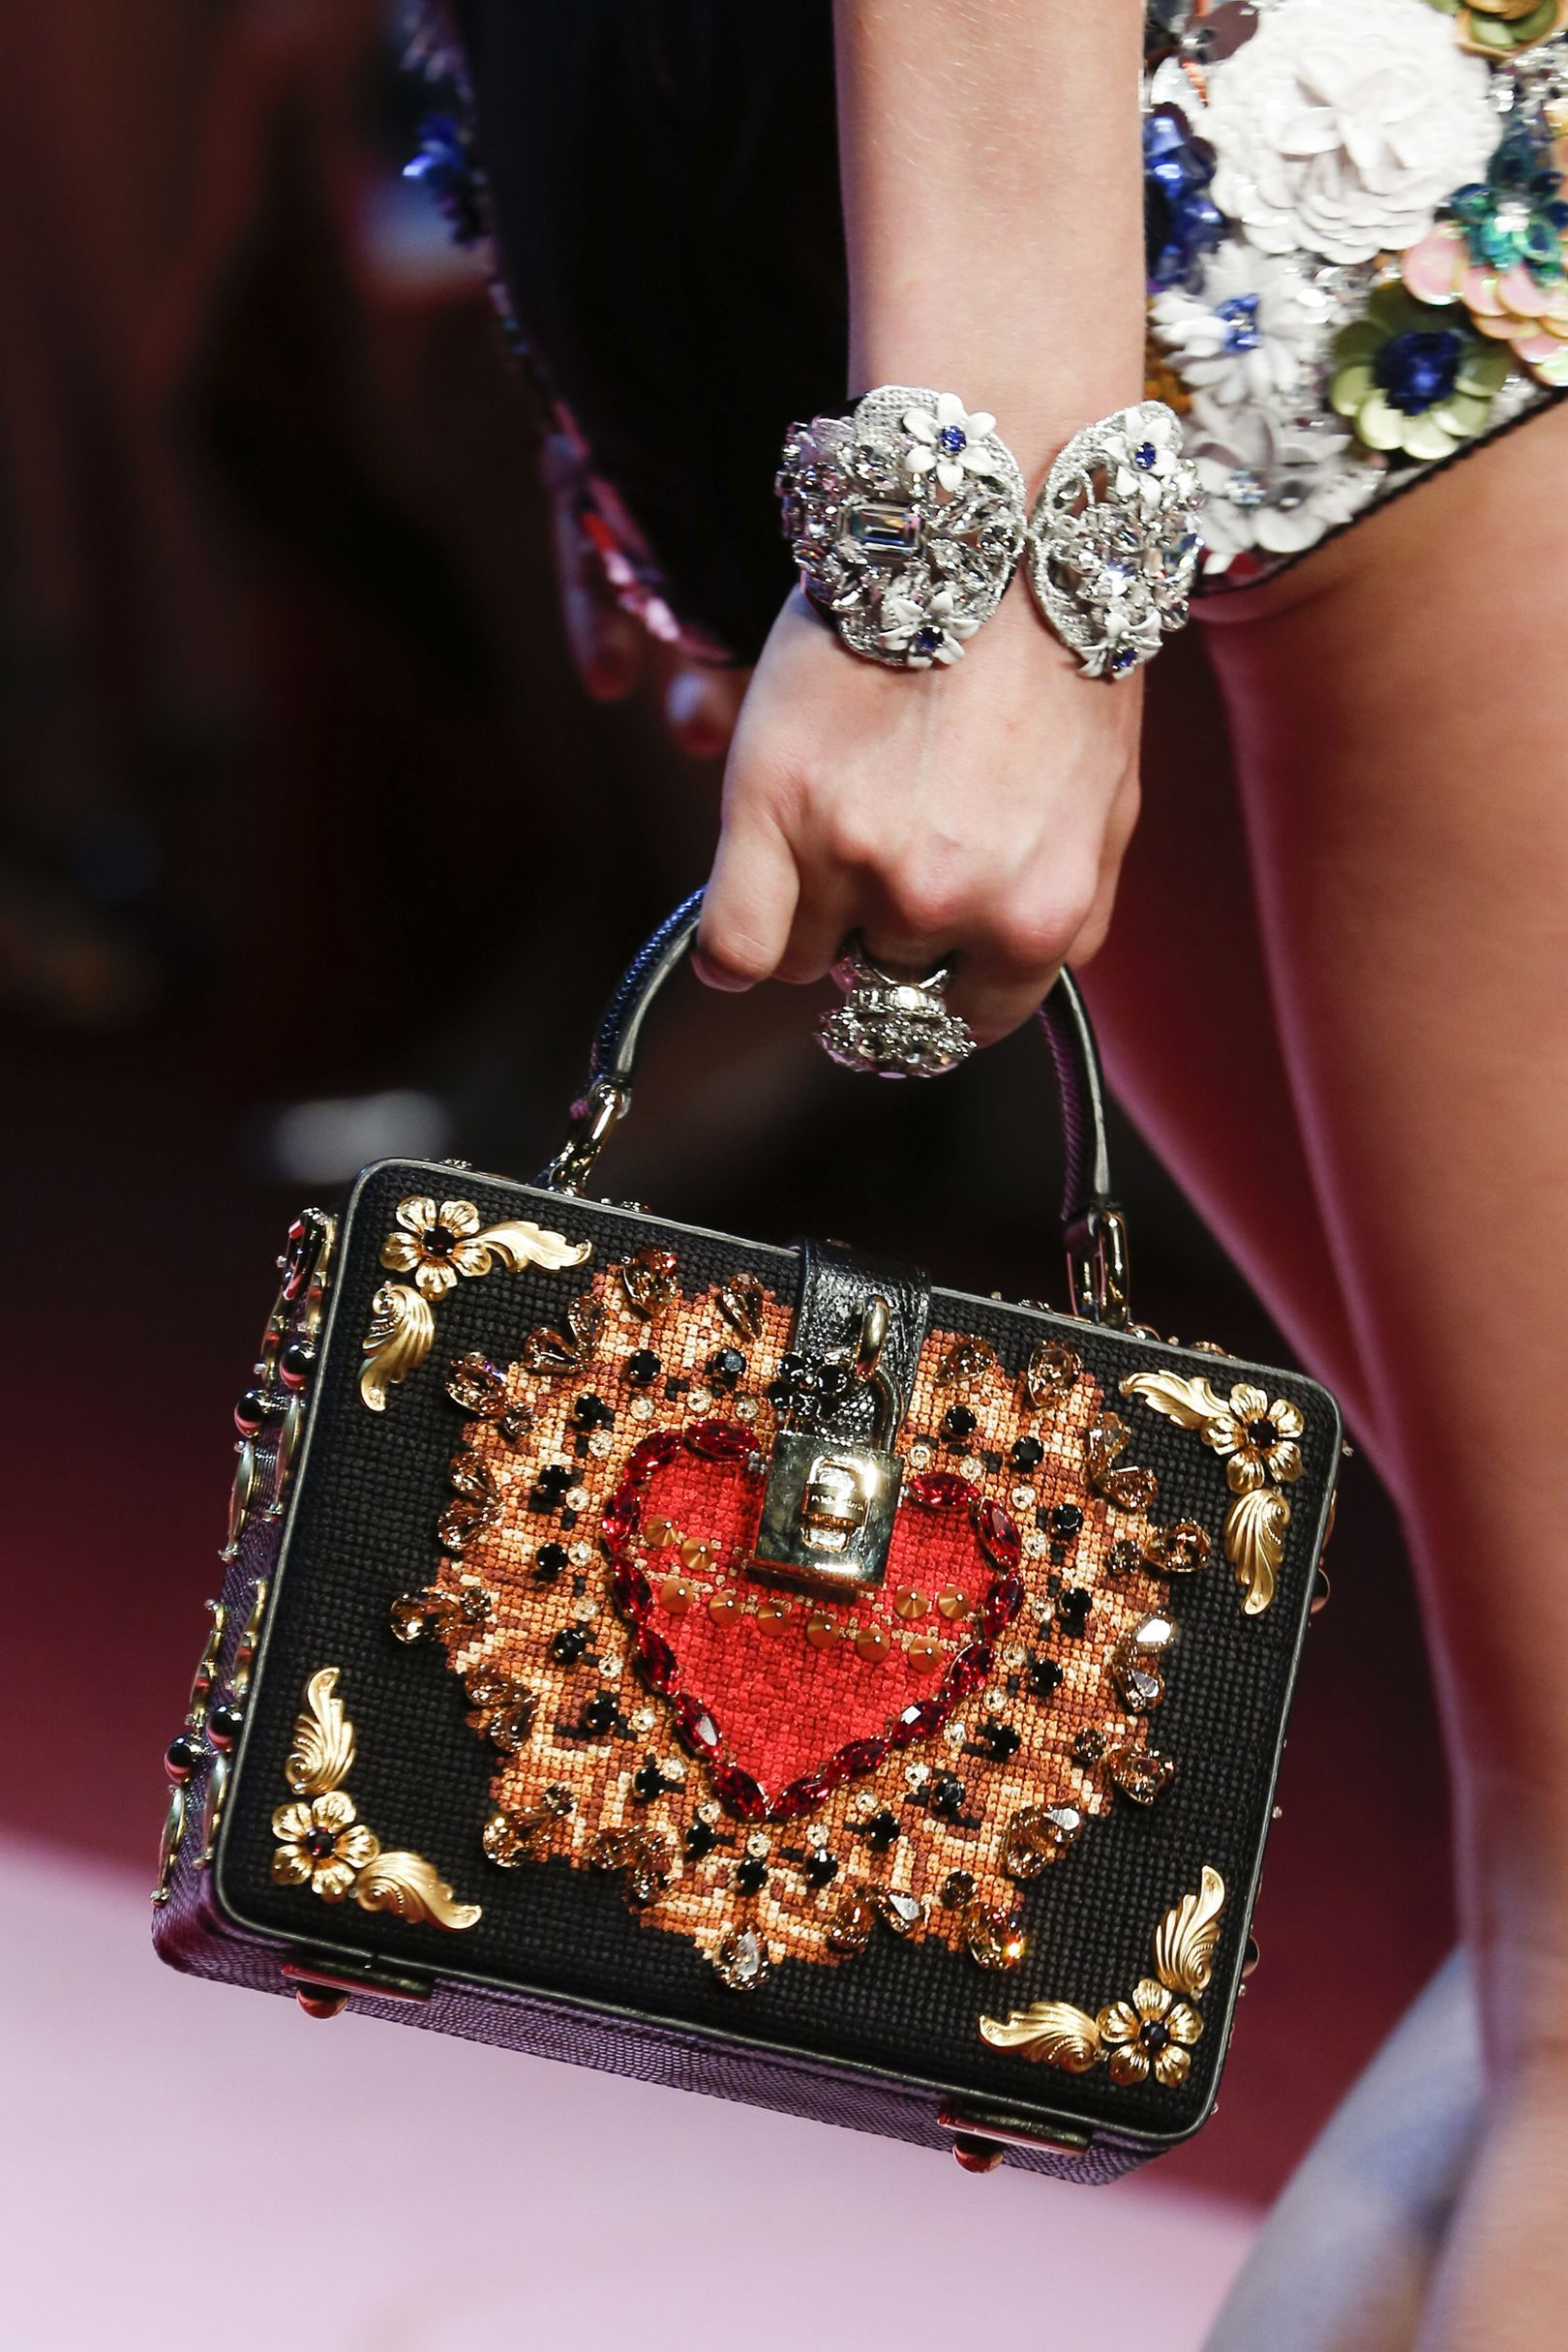 Queen Of Hearts With This Embellished Bag By Dolce Gabbana From Their Ss18 Show Hear X